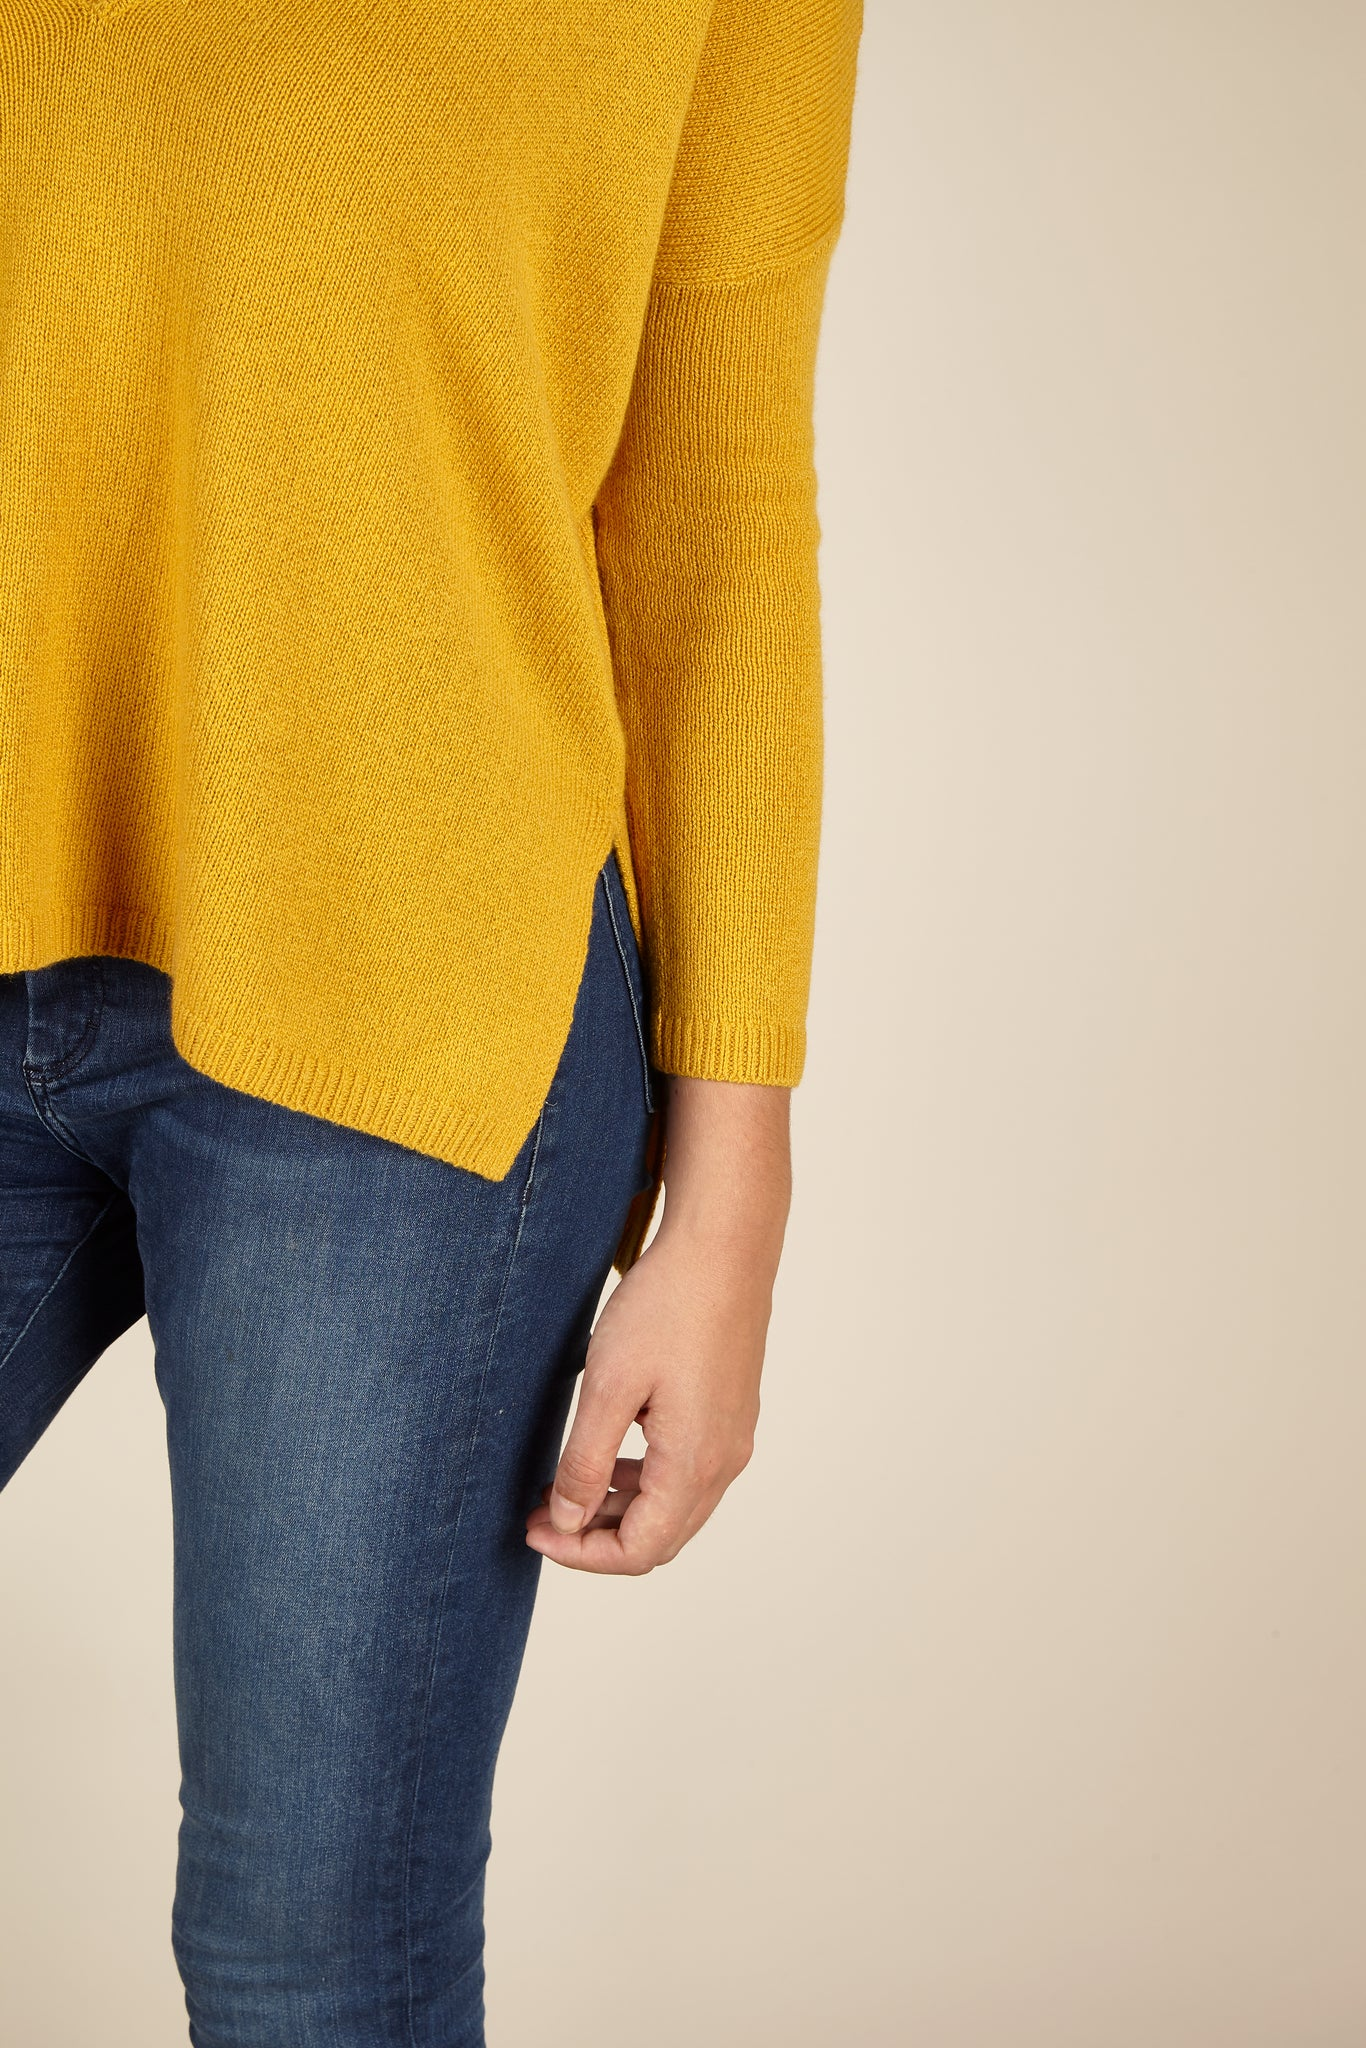 Vesper Cashmere <em>in mustard yellow</em>